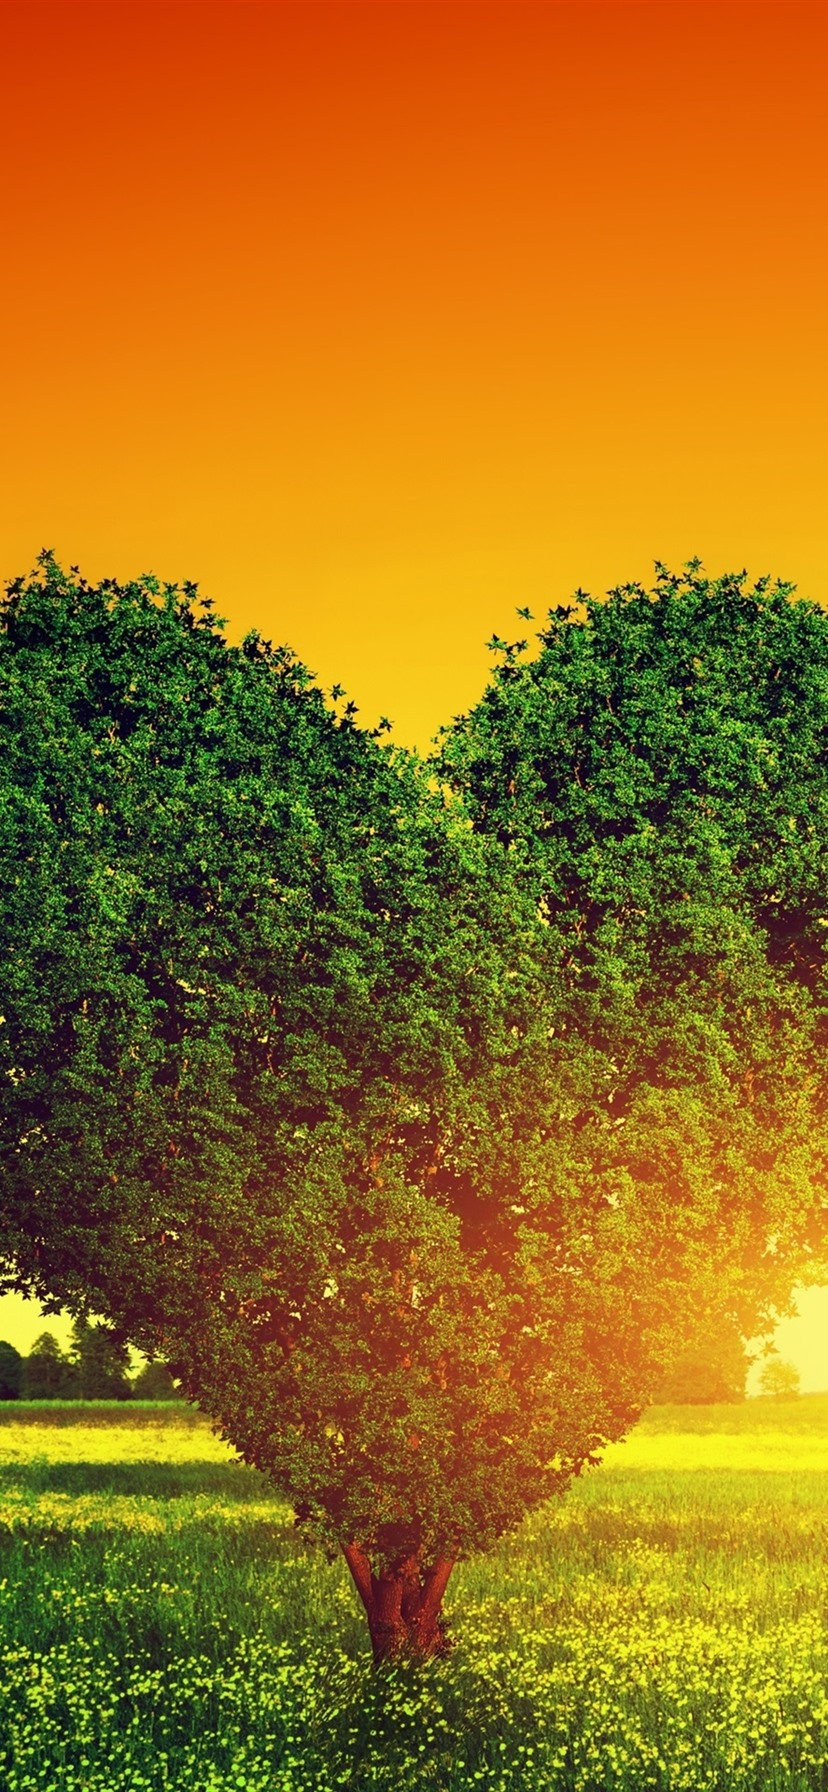 Wallpaper Two Love Hearts Trees Grass Sunset 3840x2160